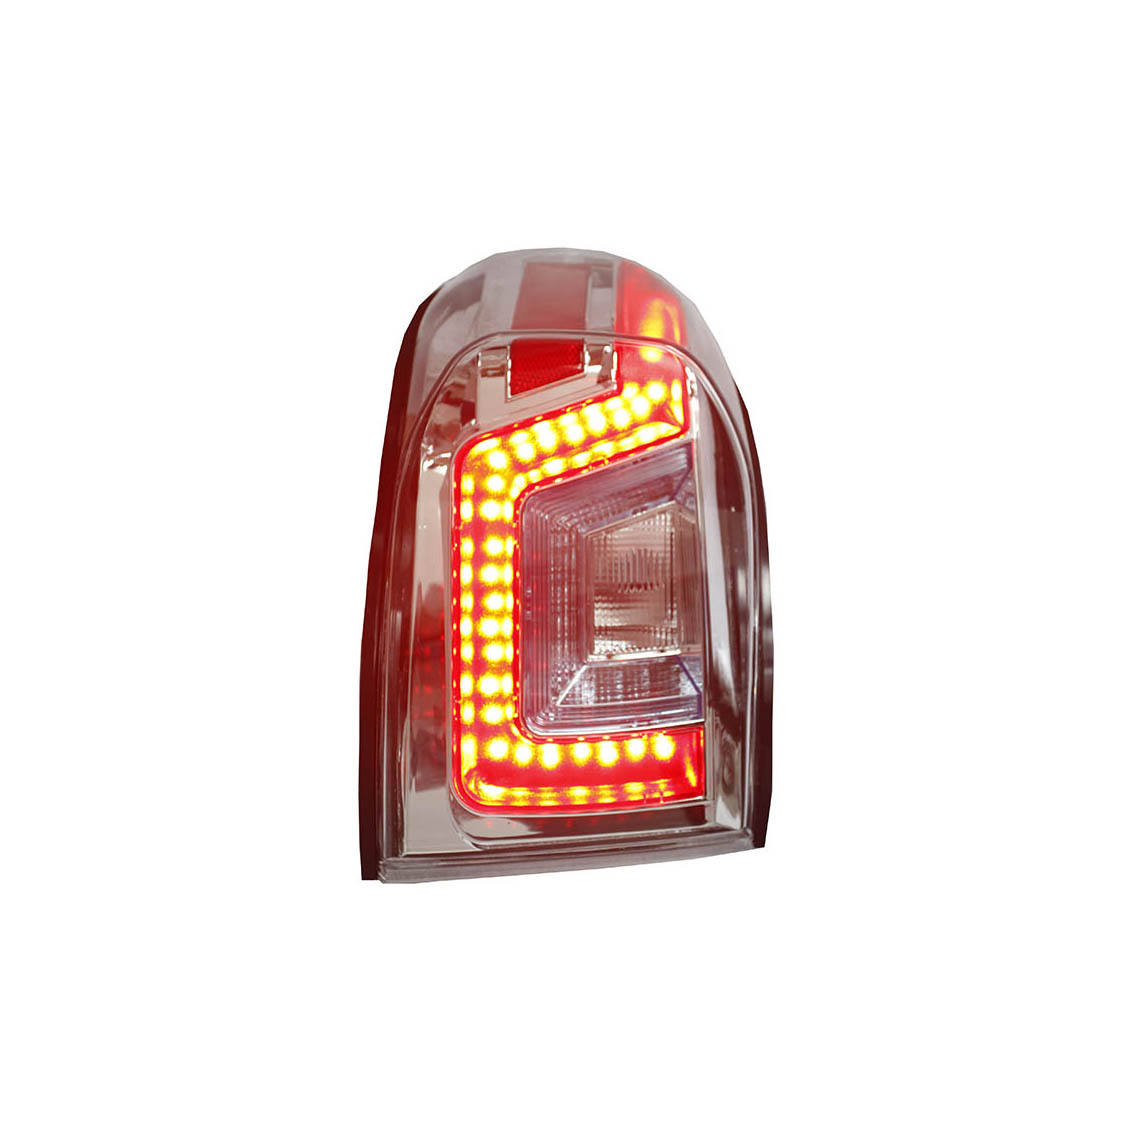 Hot sale car tail light manufacturer tail lamp for fj cruiser 2007-2018